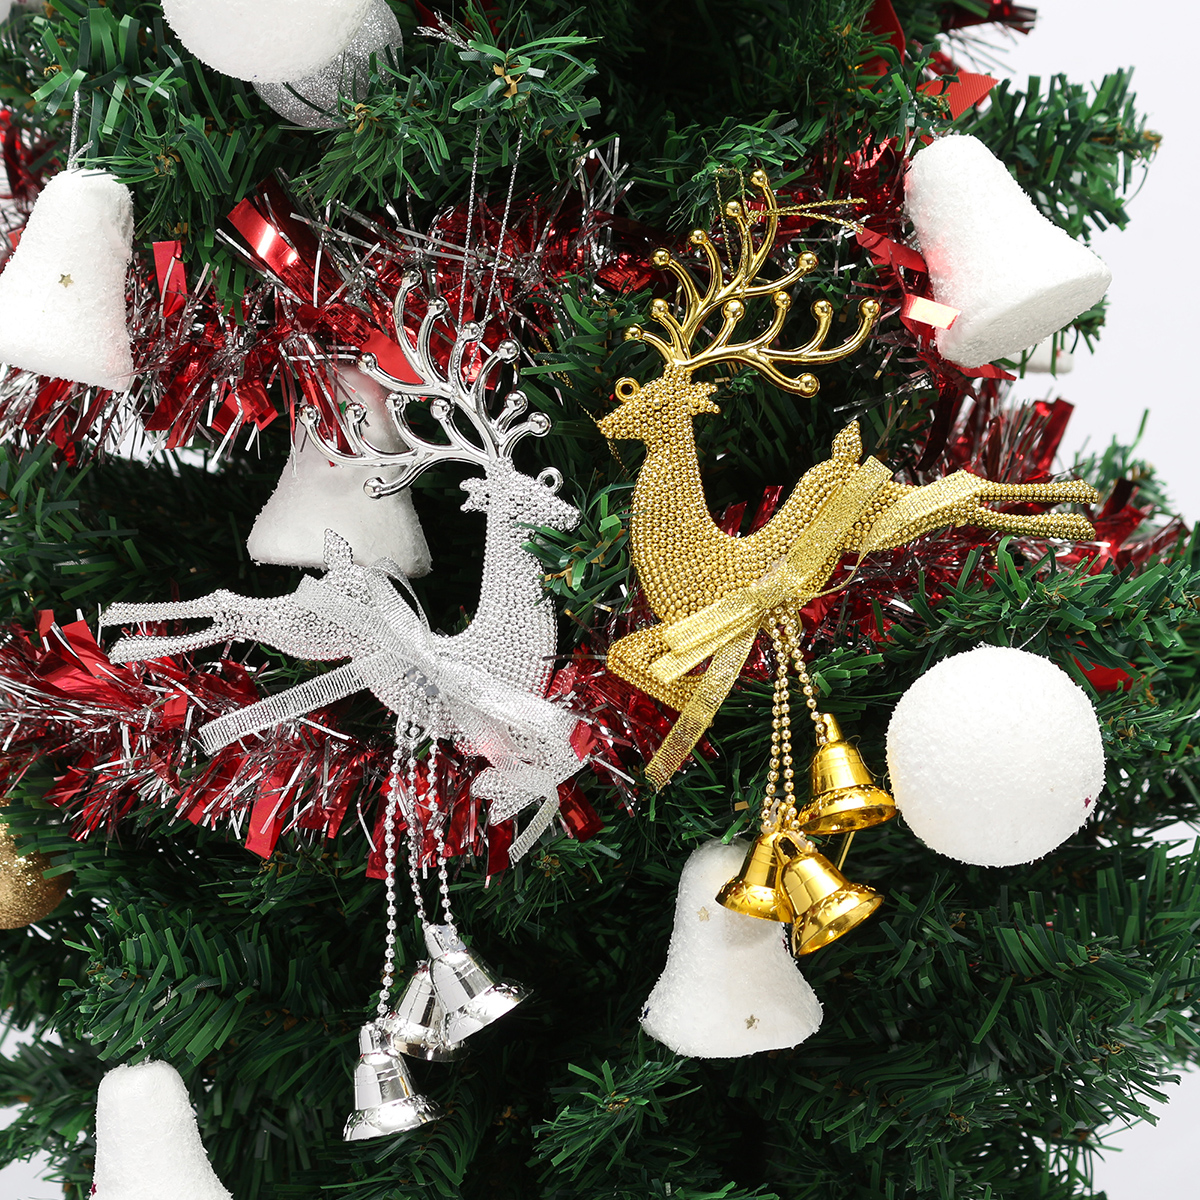 Christmas tree reindeer elk deer bell ornament pendant for Art for decoration and ornamentation